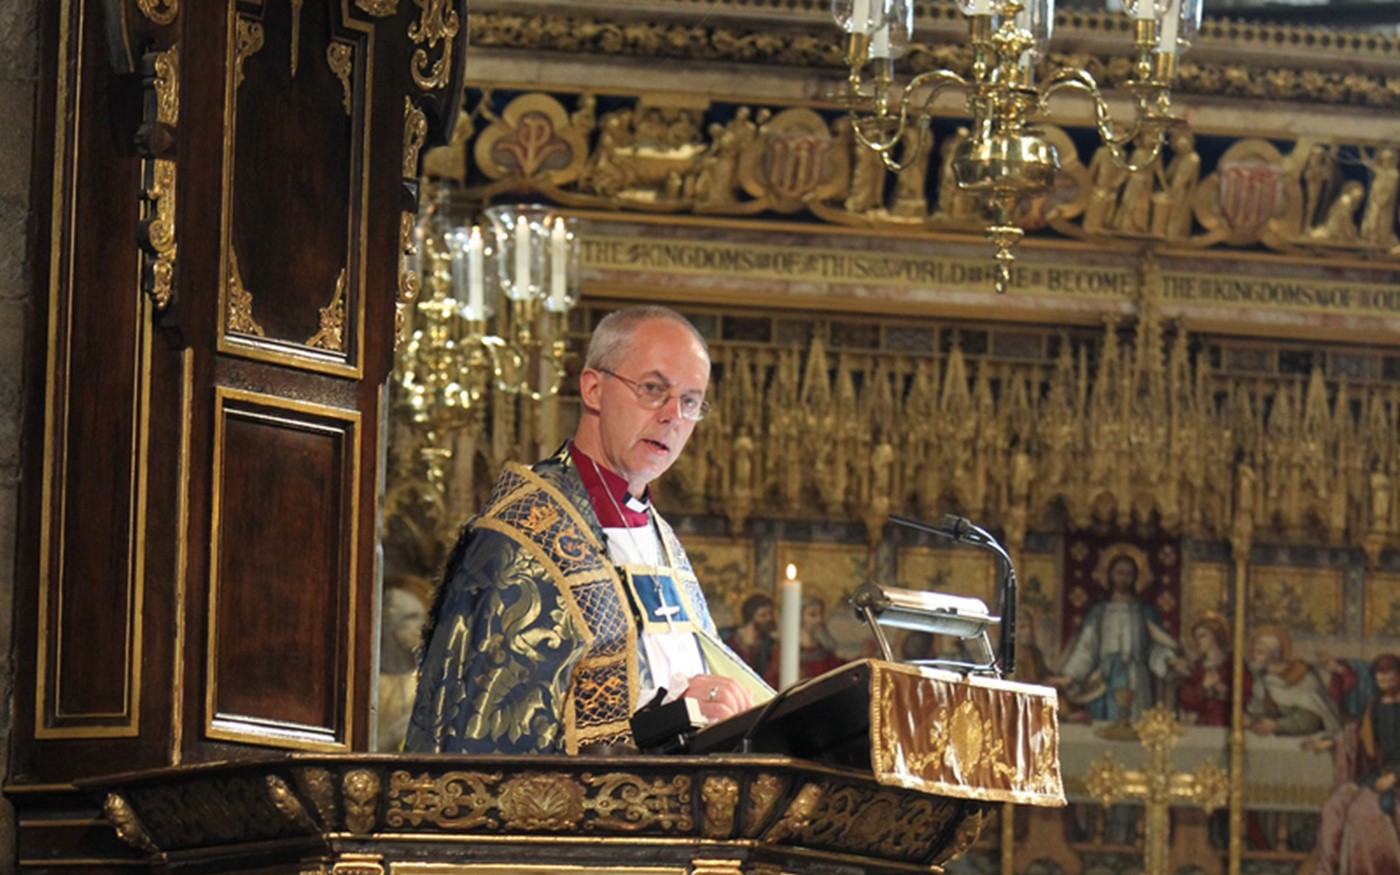 The Address was given by The Most Reverend and Right Honourable Justin Welby, Archbishop of Canterbury, Primate of All England and Metropolitan